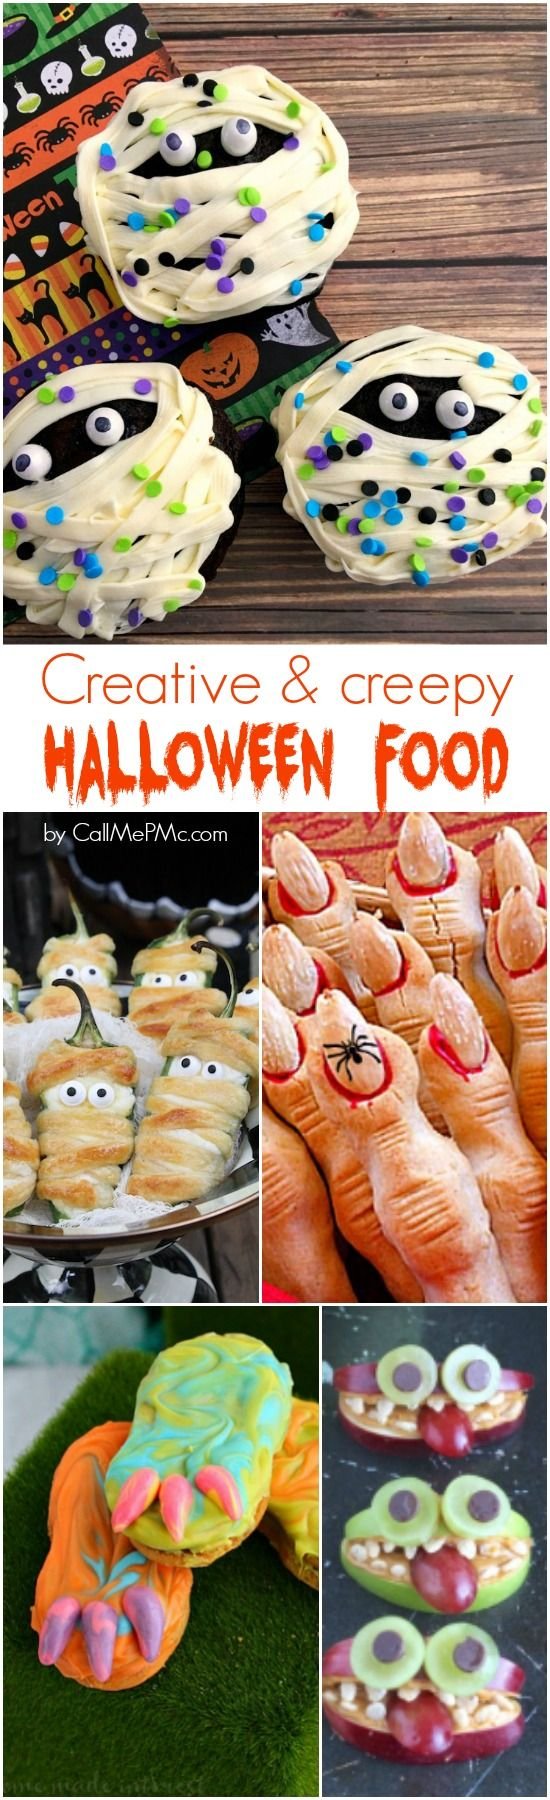 192 best halloween images on Pinterest